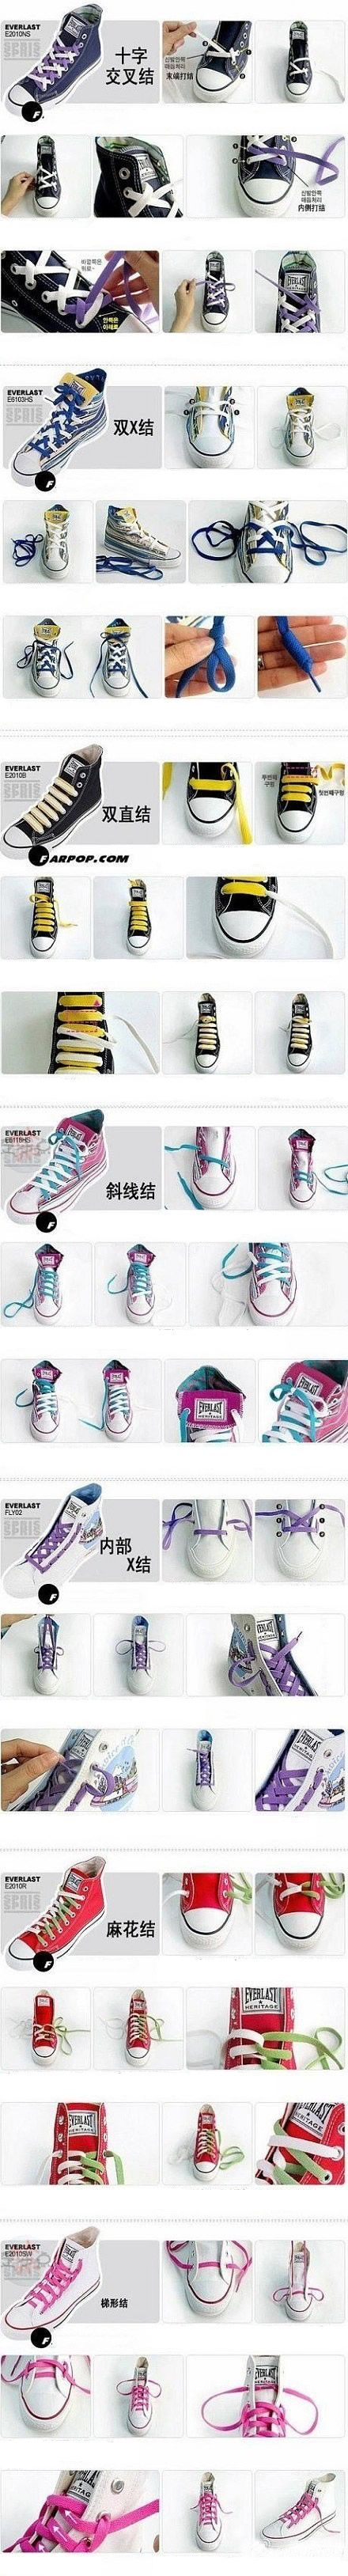 Converse clipart shoelace On Your images Lace Tie